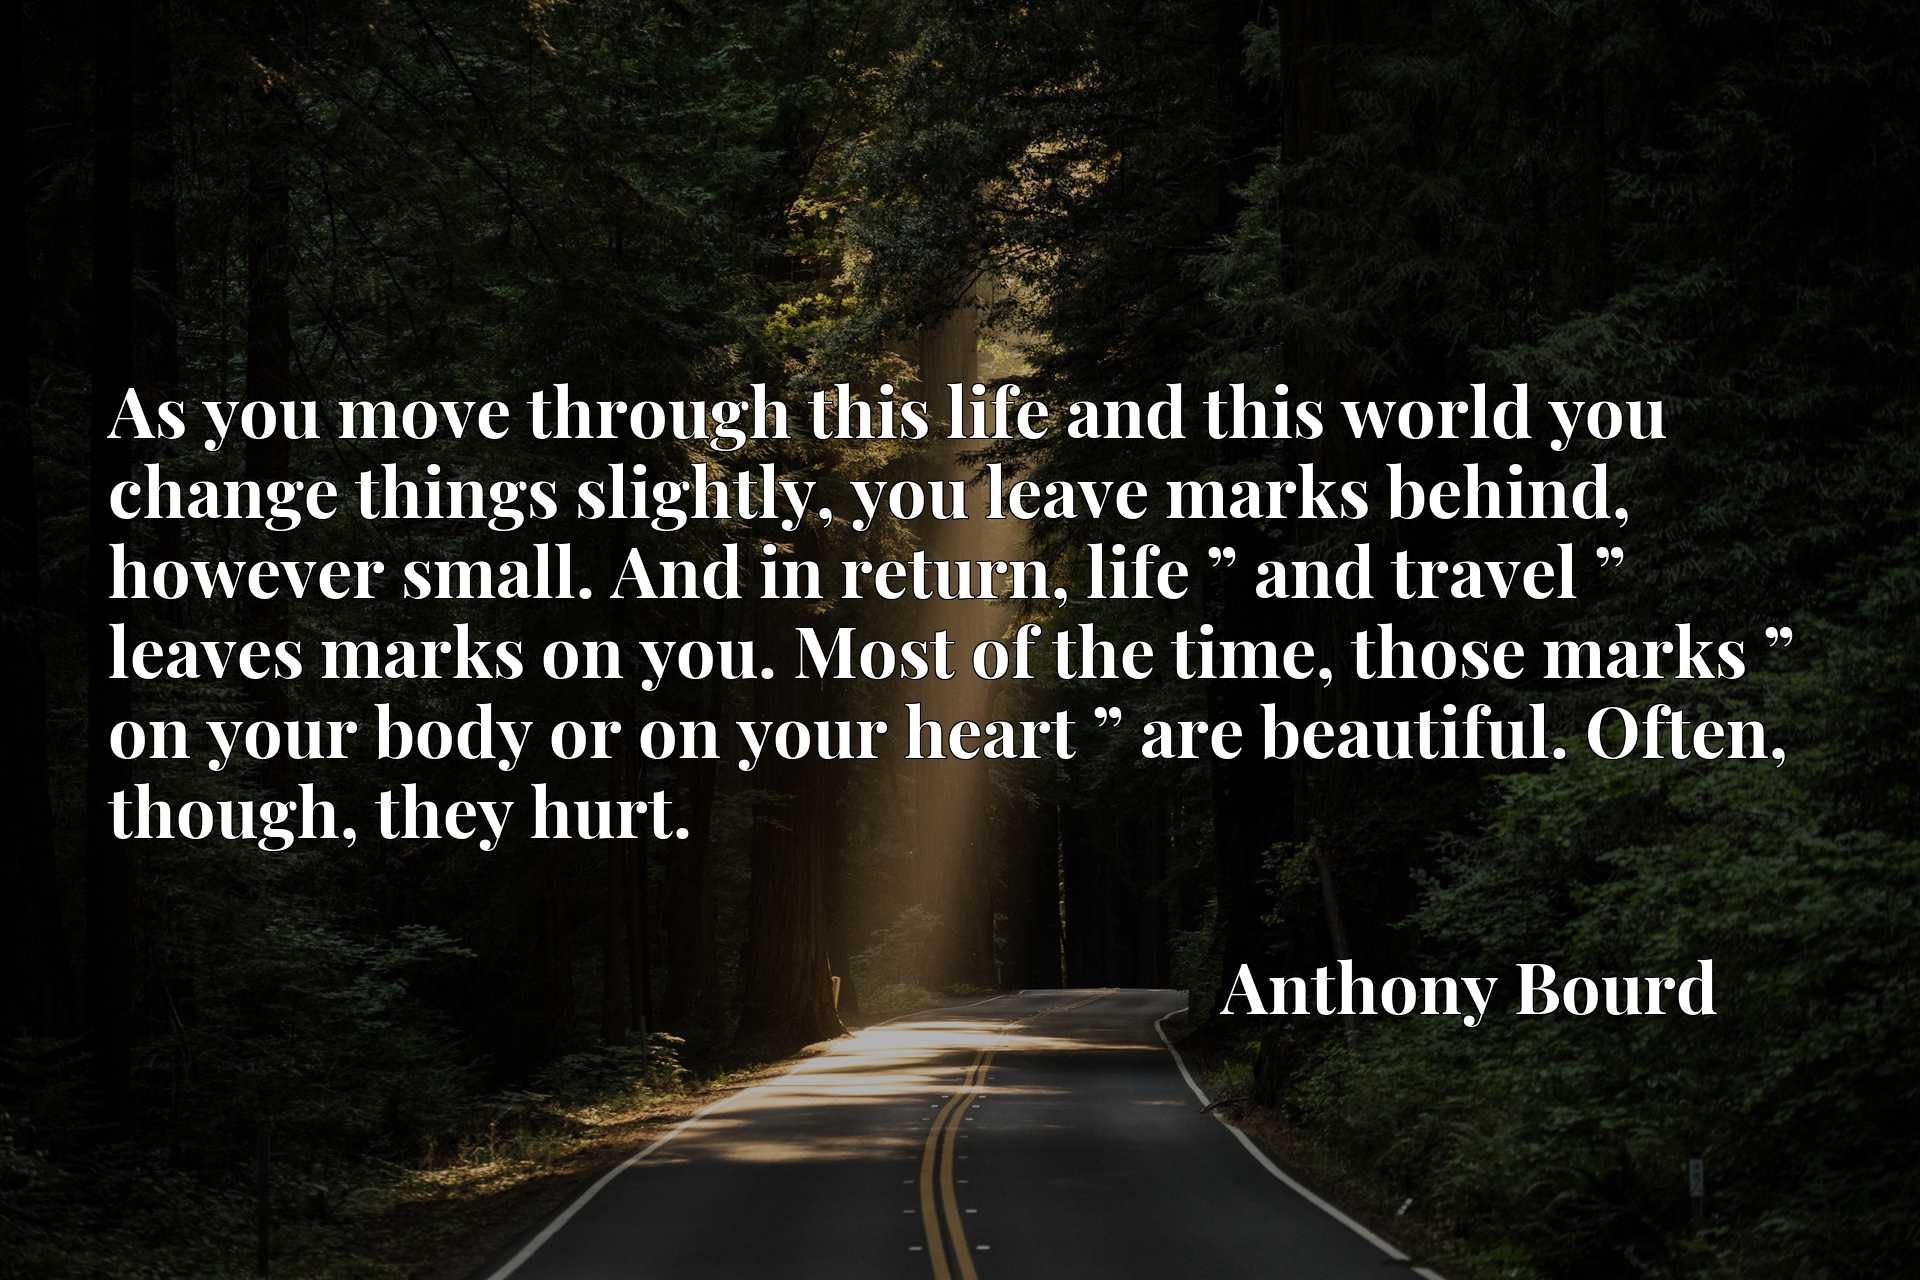 """As you move through this life and this world you change things slightly, you leave marks behind, however small. And in return, life """" and travel """" leaves marks on you. Most of the time, those marks """" on your body or on your heart """" are beautiful. Often, though, they hurt."""